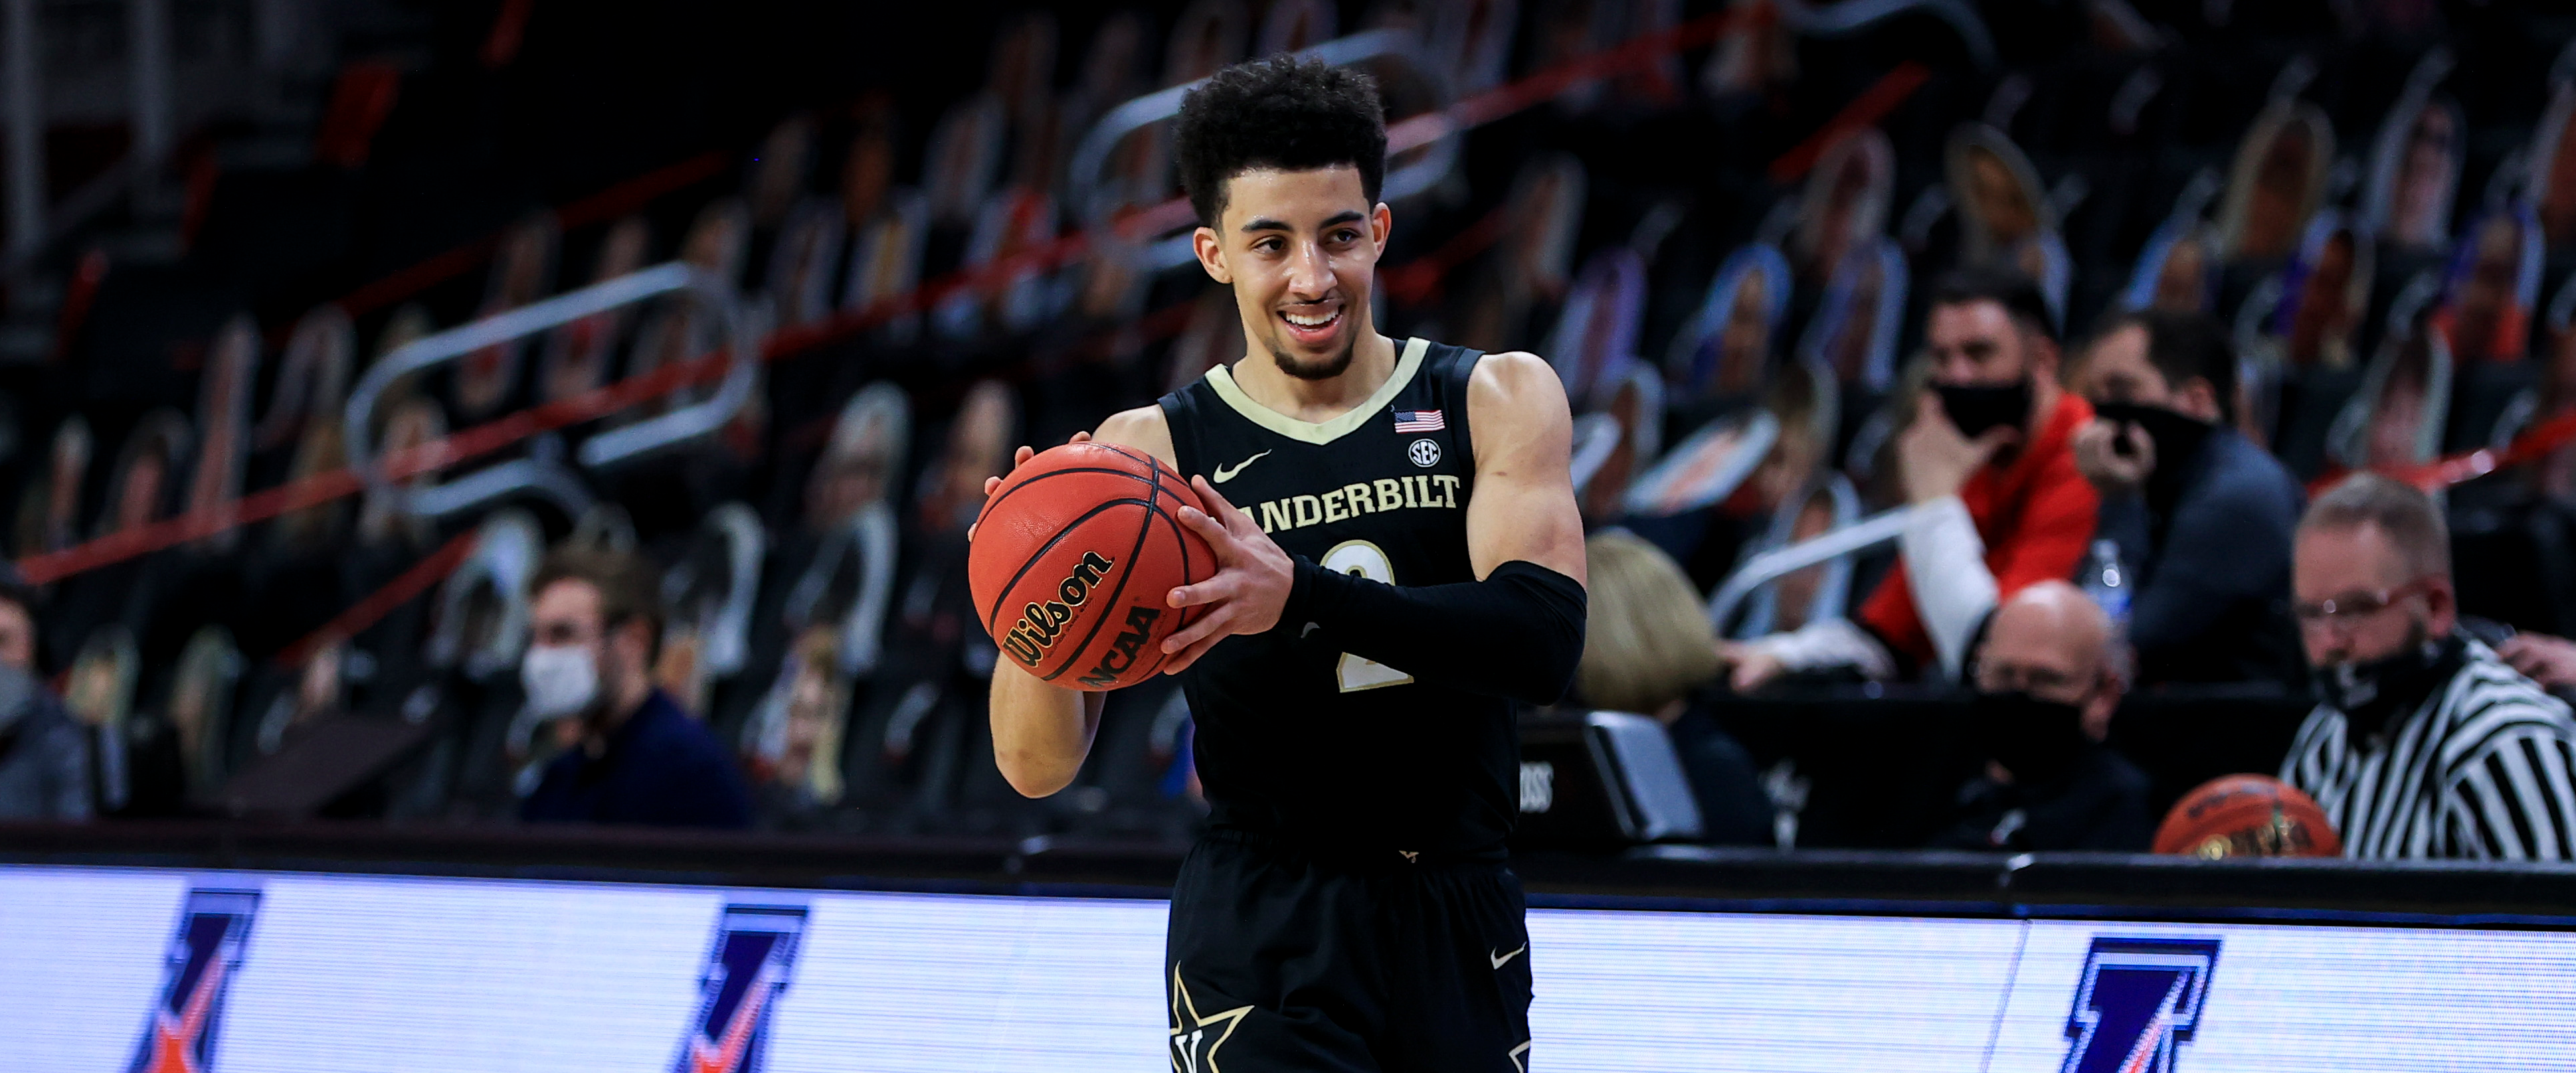 Vanderbilt basketball: One step forward, two steps back